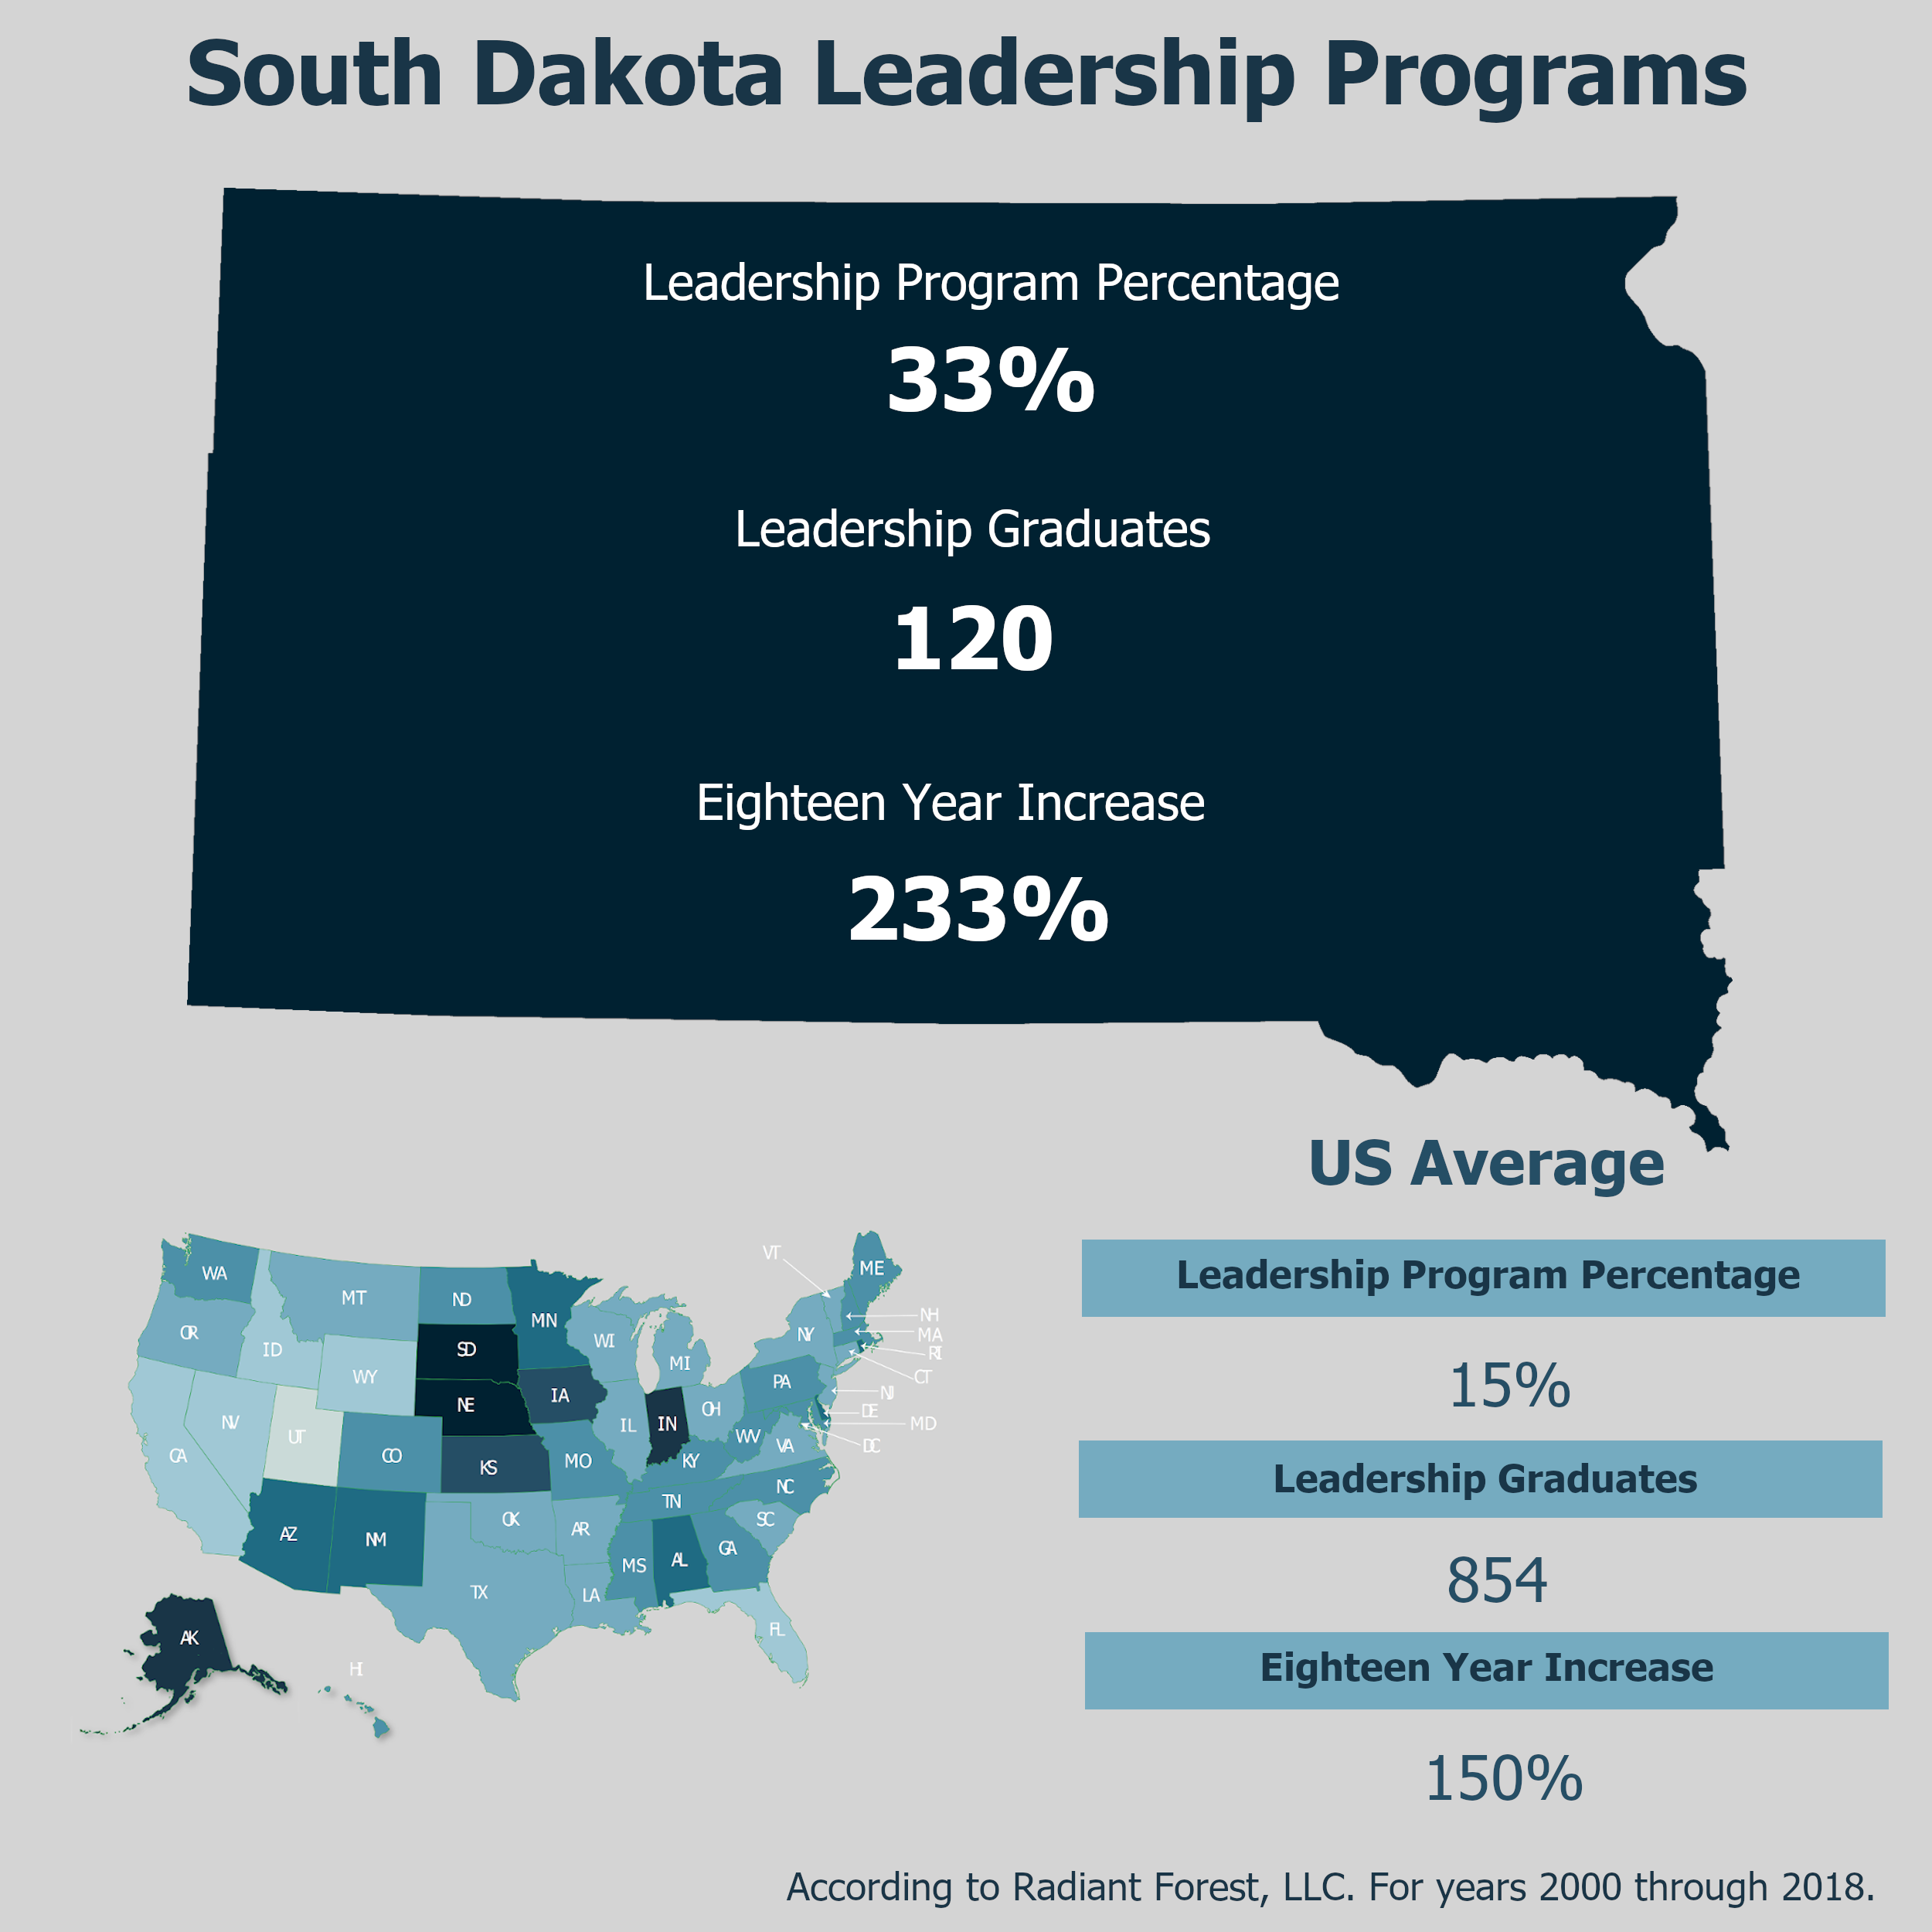 State Highlight of South Dakota Leadership Programs in Postsecondary Institutions